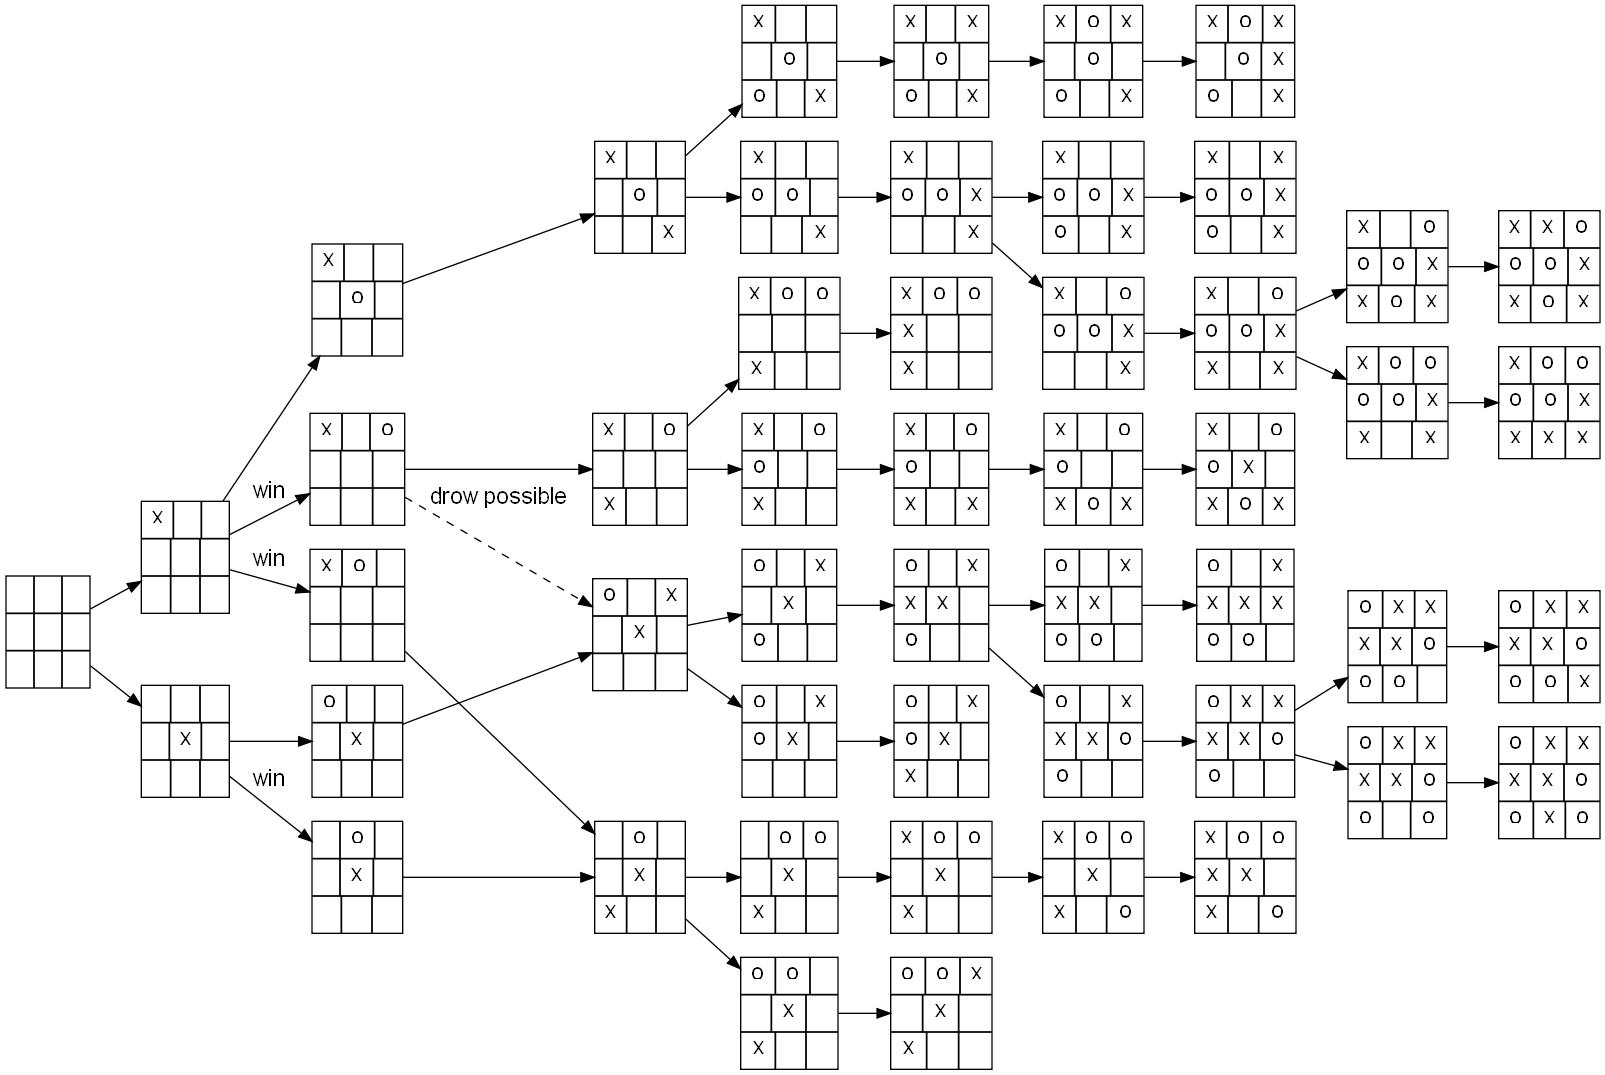 tree diagram game 2000 land rover discovery 2 wiring google deepmind 39s alphago how it works